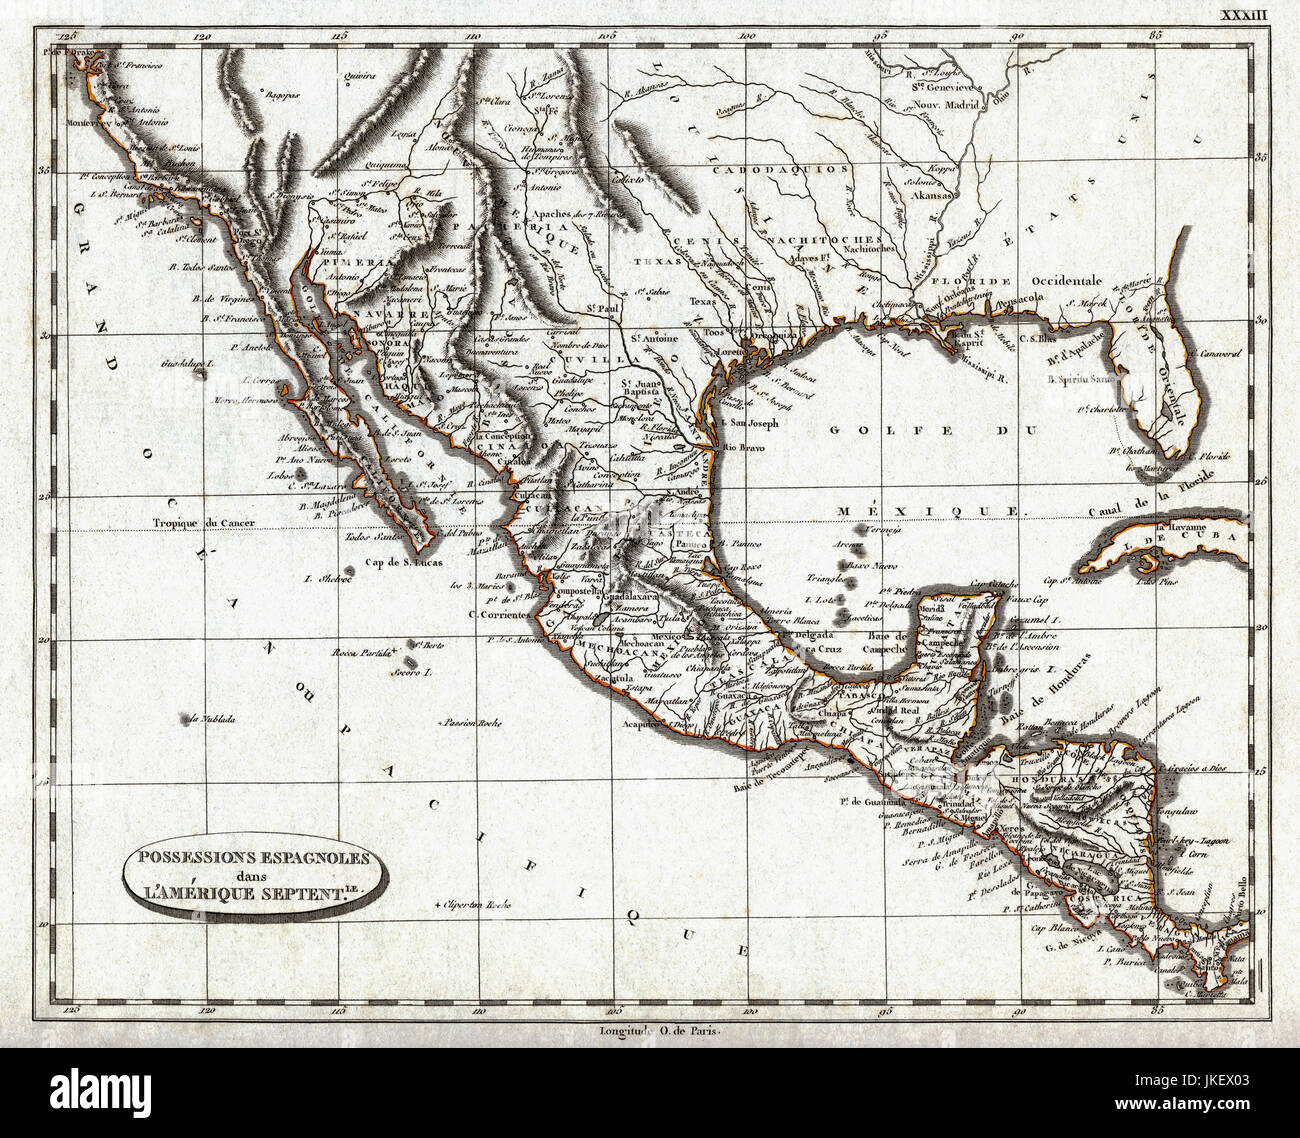 1804 Pinkerton Map of Colonial Spanish America including Mexico